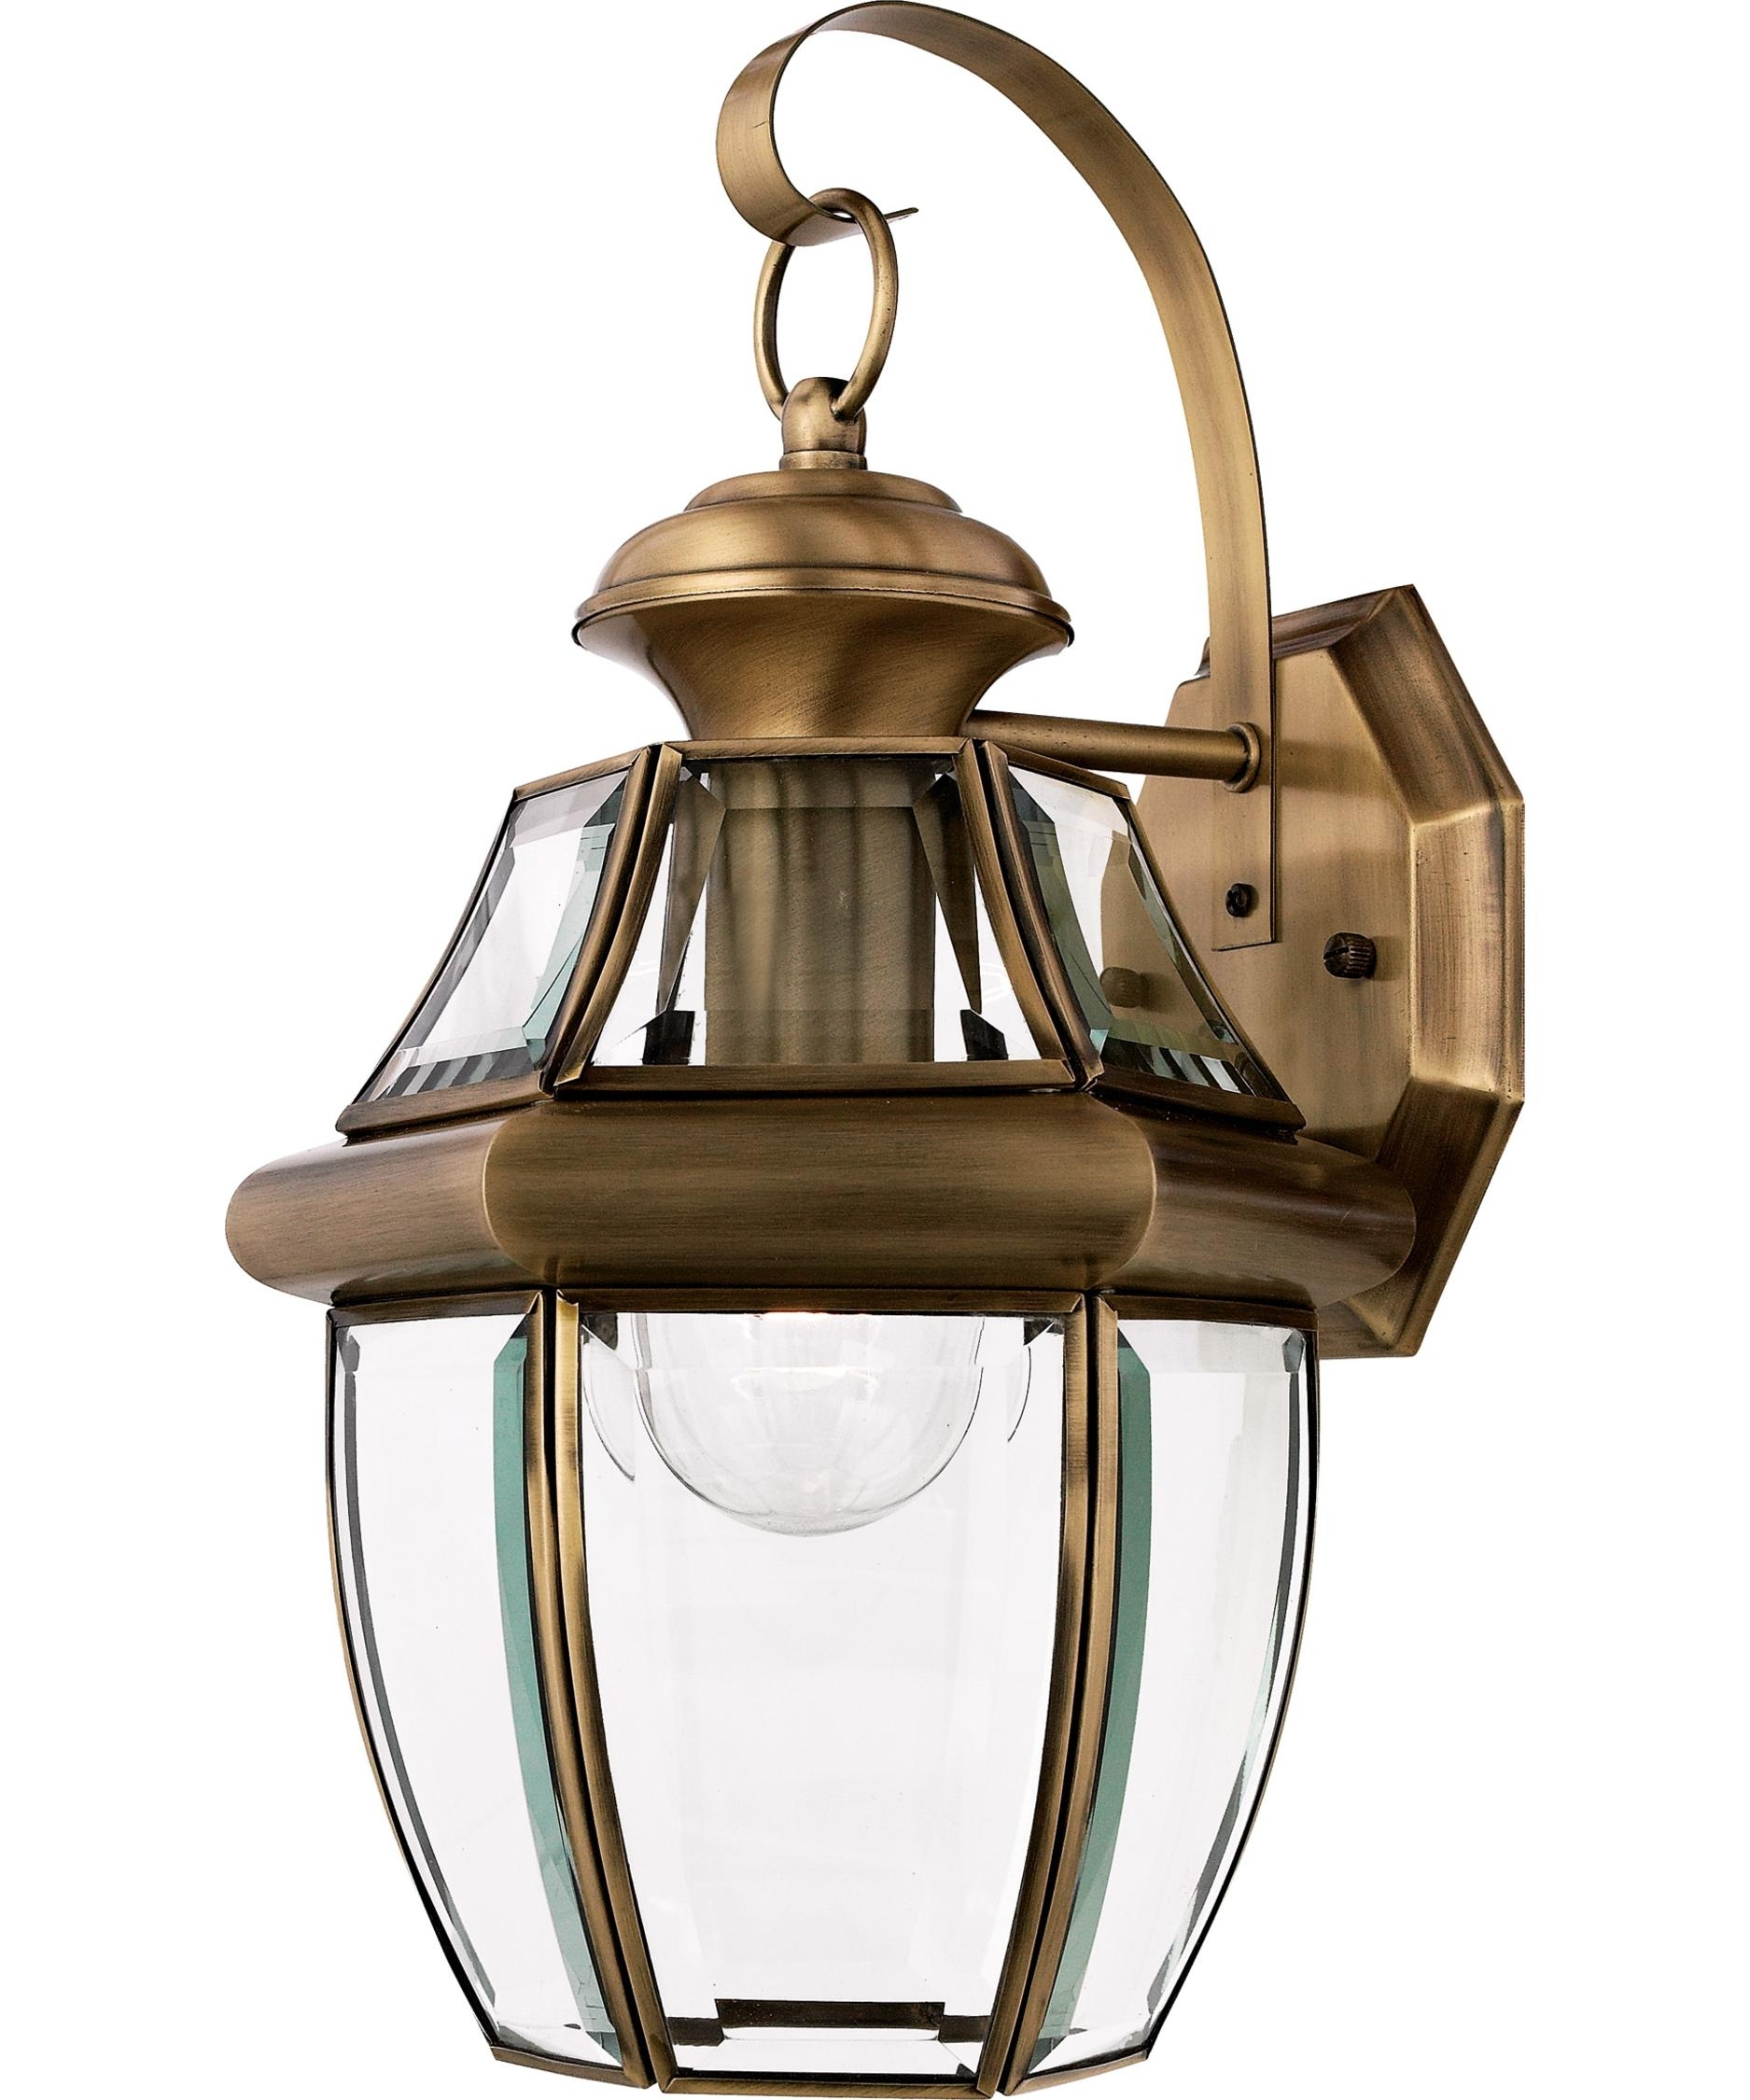 Quoizel Ny8316 Newbury 9 Inch Wide 1 Light Outdoor Wall Light with Quoizel Outdoor Lanterns (Image 7 of 20)